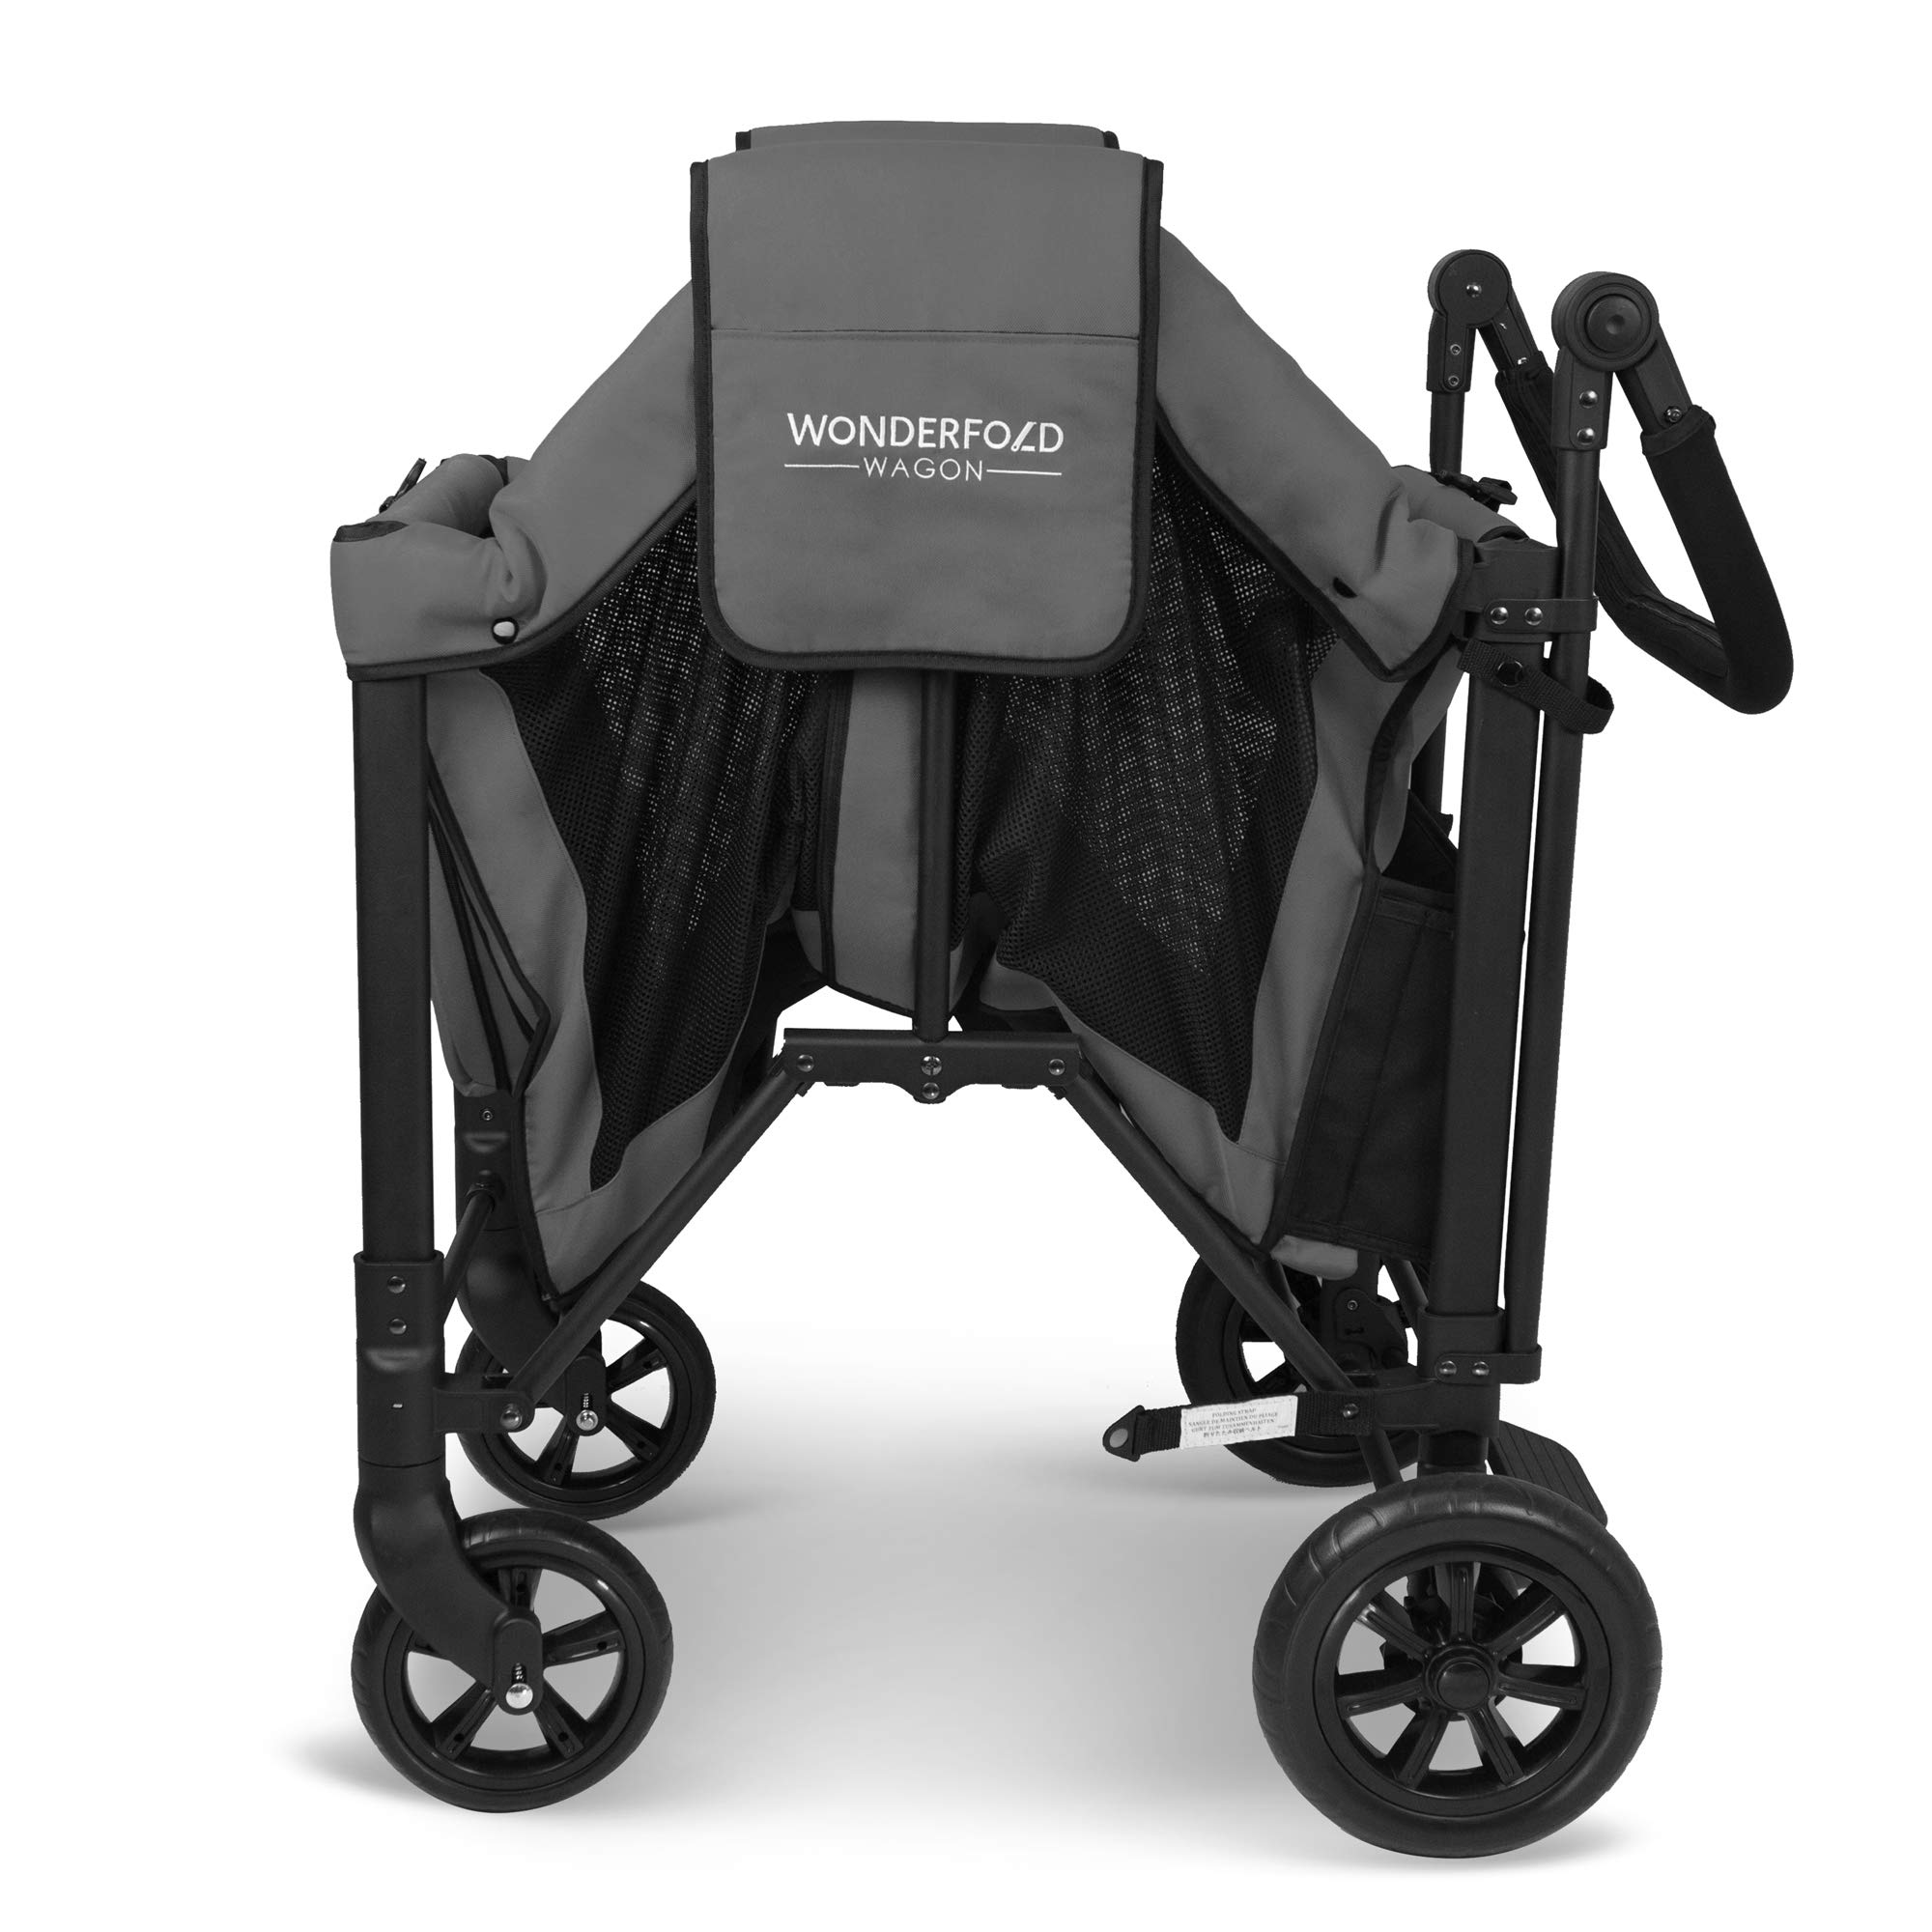 WonderFold Multi-Function Push 2 Passenger Double Folding Stroller, Adjustable Canopy & Removable Chair Seat Up To 2 Toddlers (Charcoal Gray) by WonderFold (Image #5)